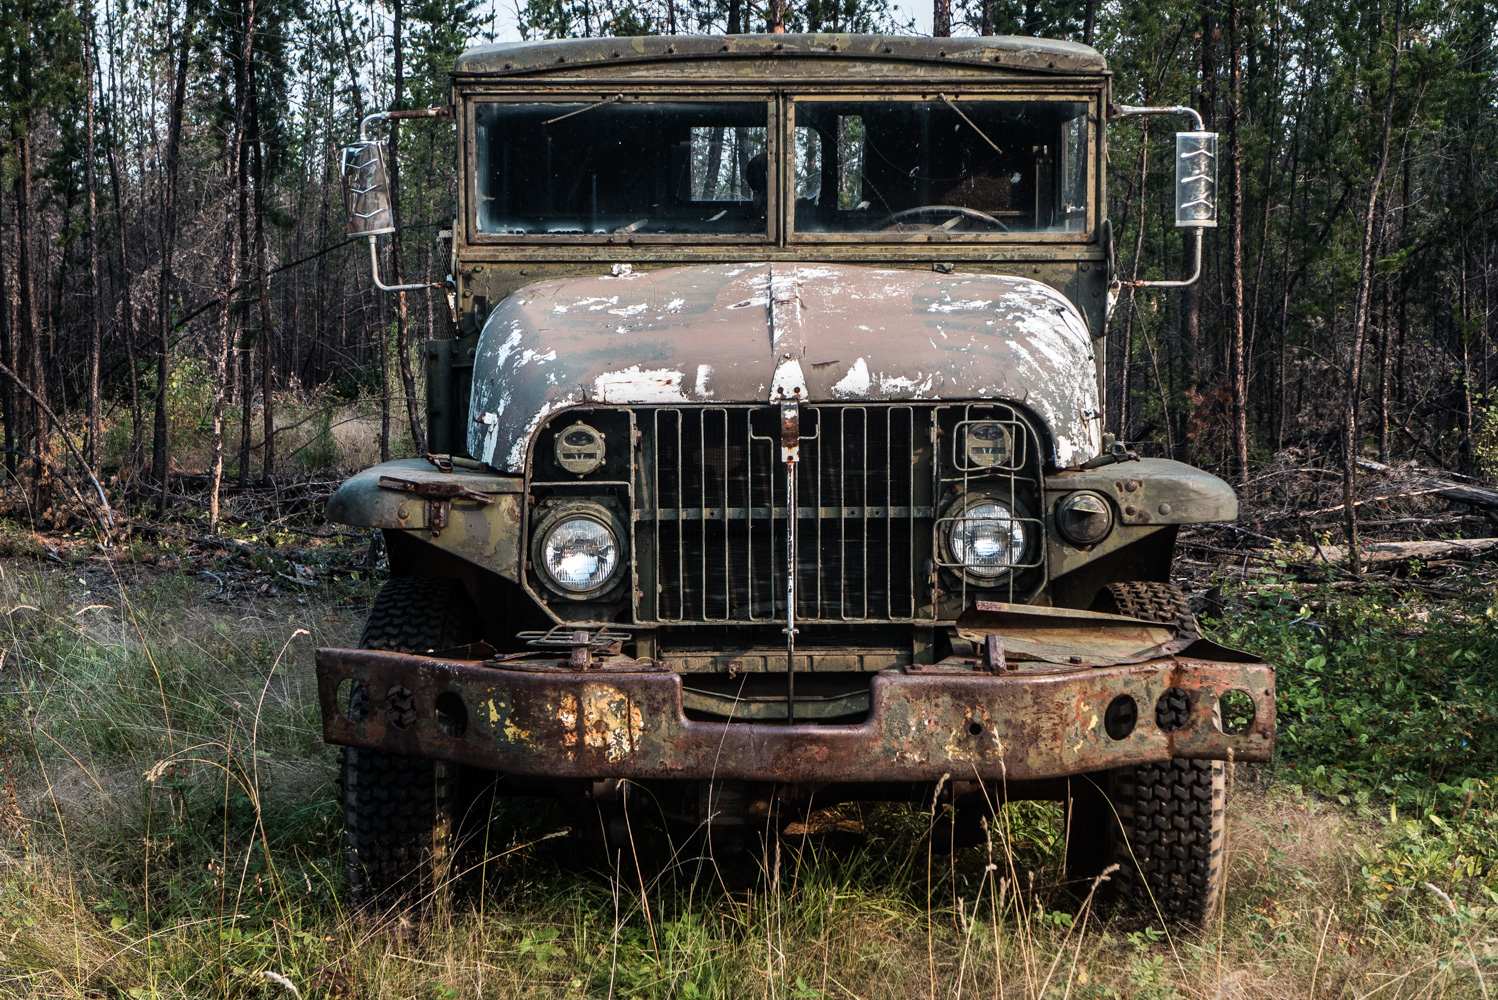 Army truck from the Second World War at Embarras Portage, August 2014.